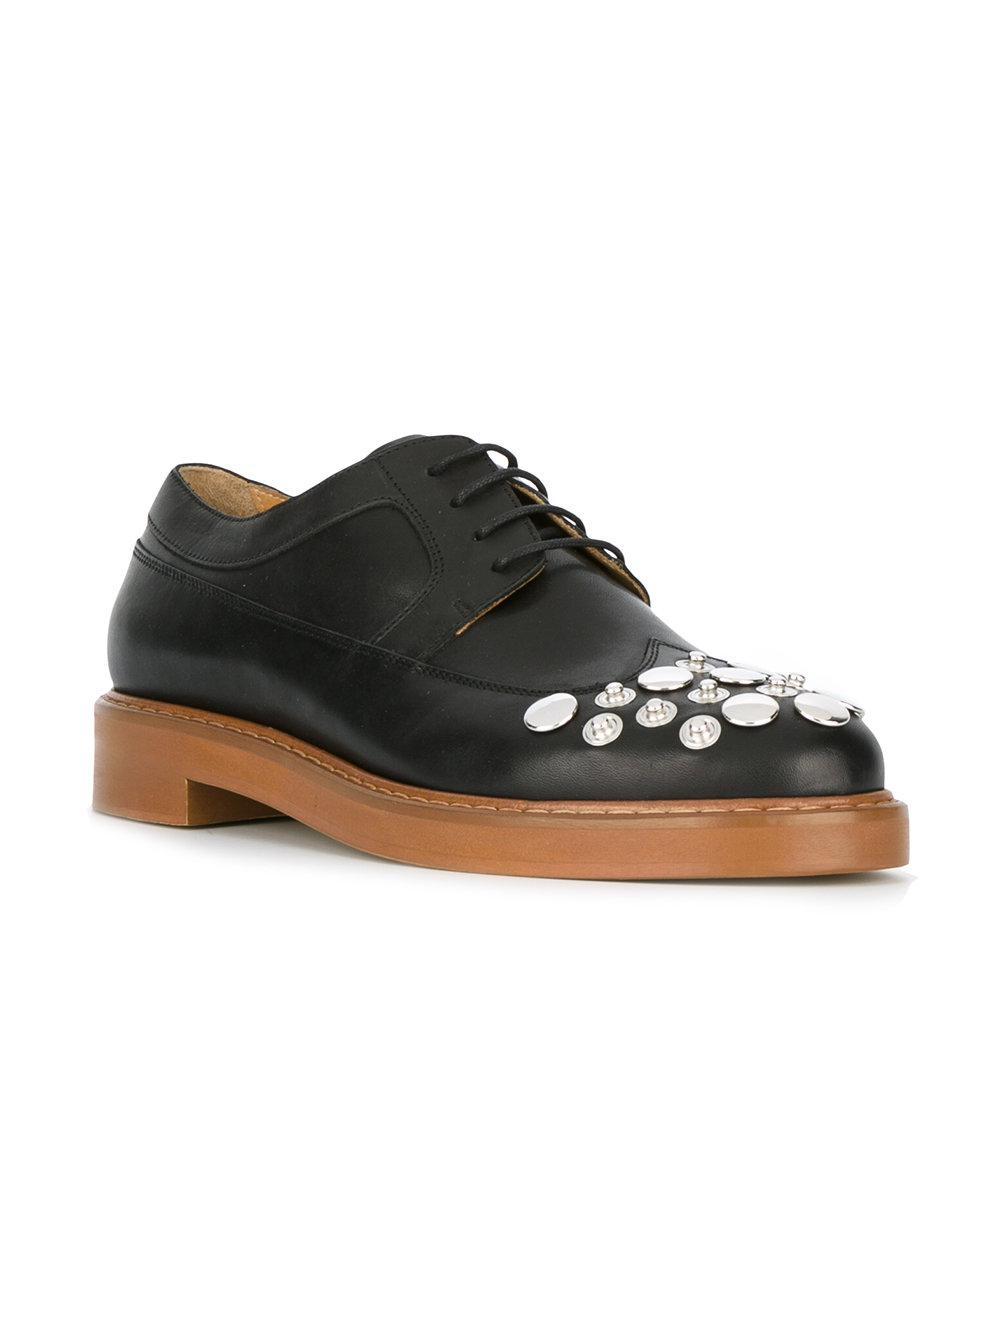 915a0c730e5f MM6 by Maison Martin Margiela Studded Brogues in Black - Lyst